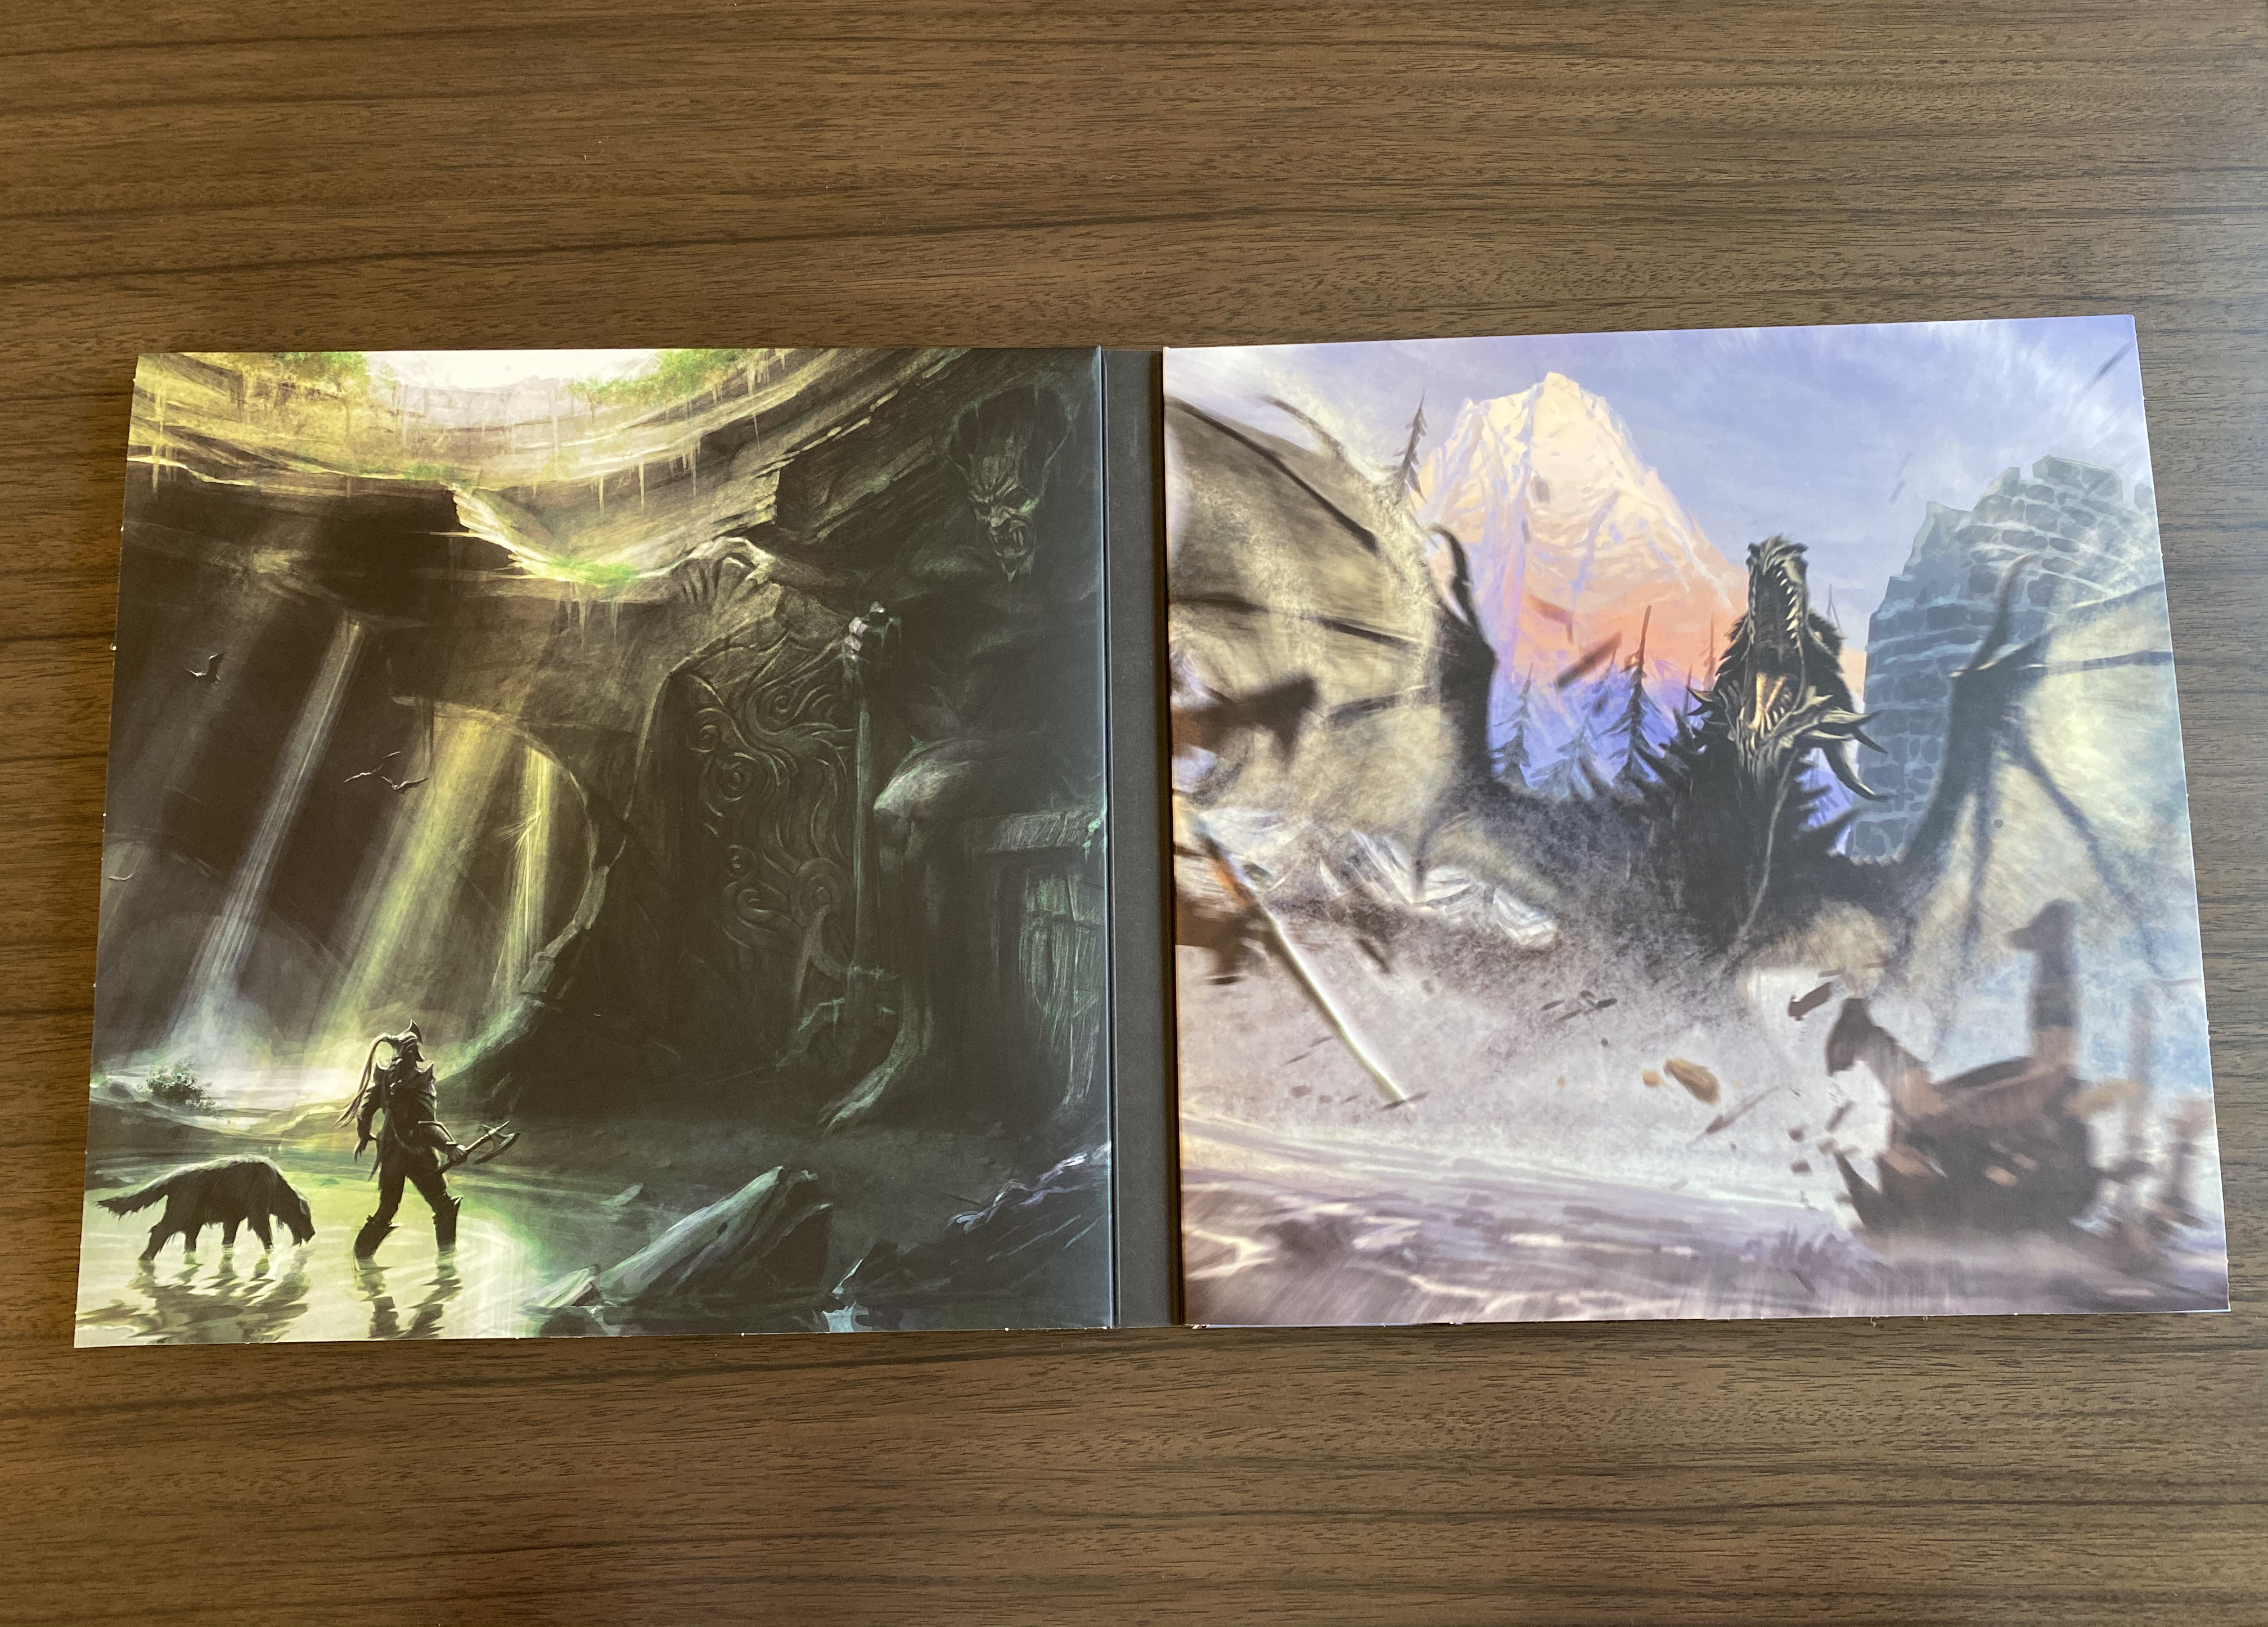 Kennon-Green Elder Scrolls V Skyrim Ultimate Edition Vinyl Box Set Sweet Roll Comic Con Limited LP - Inside 3 and 4